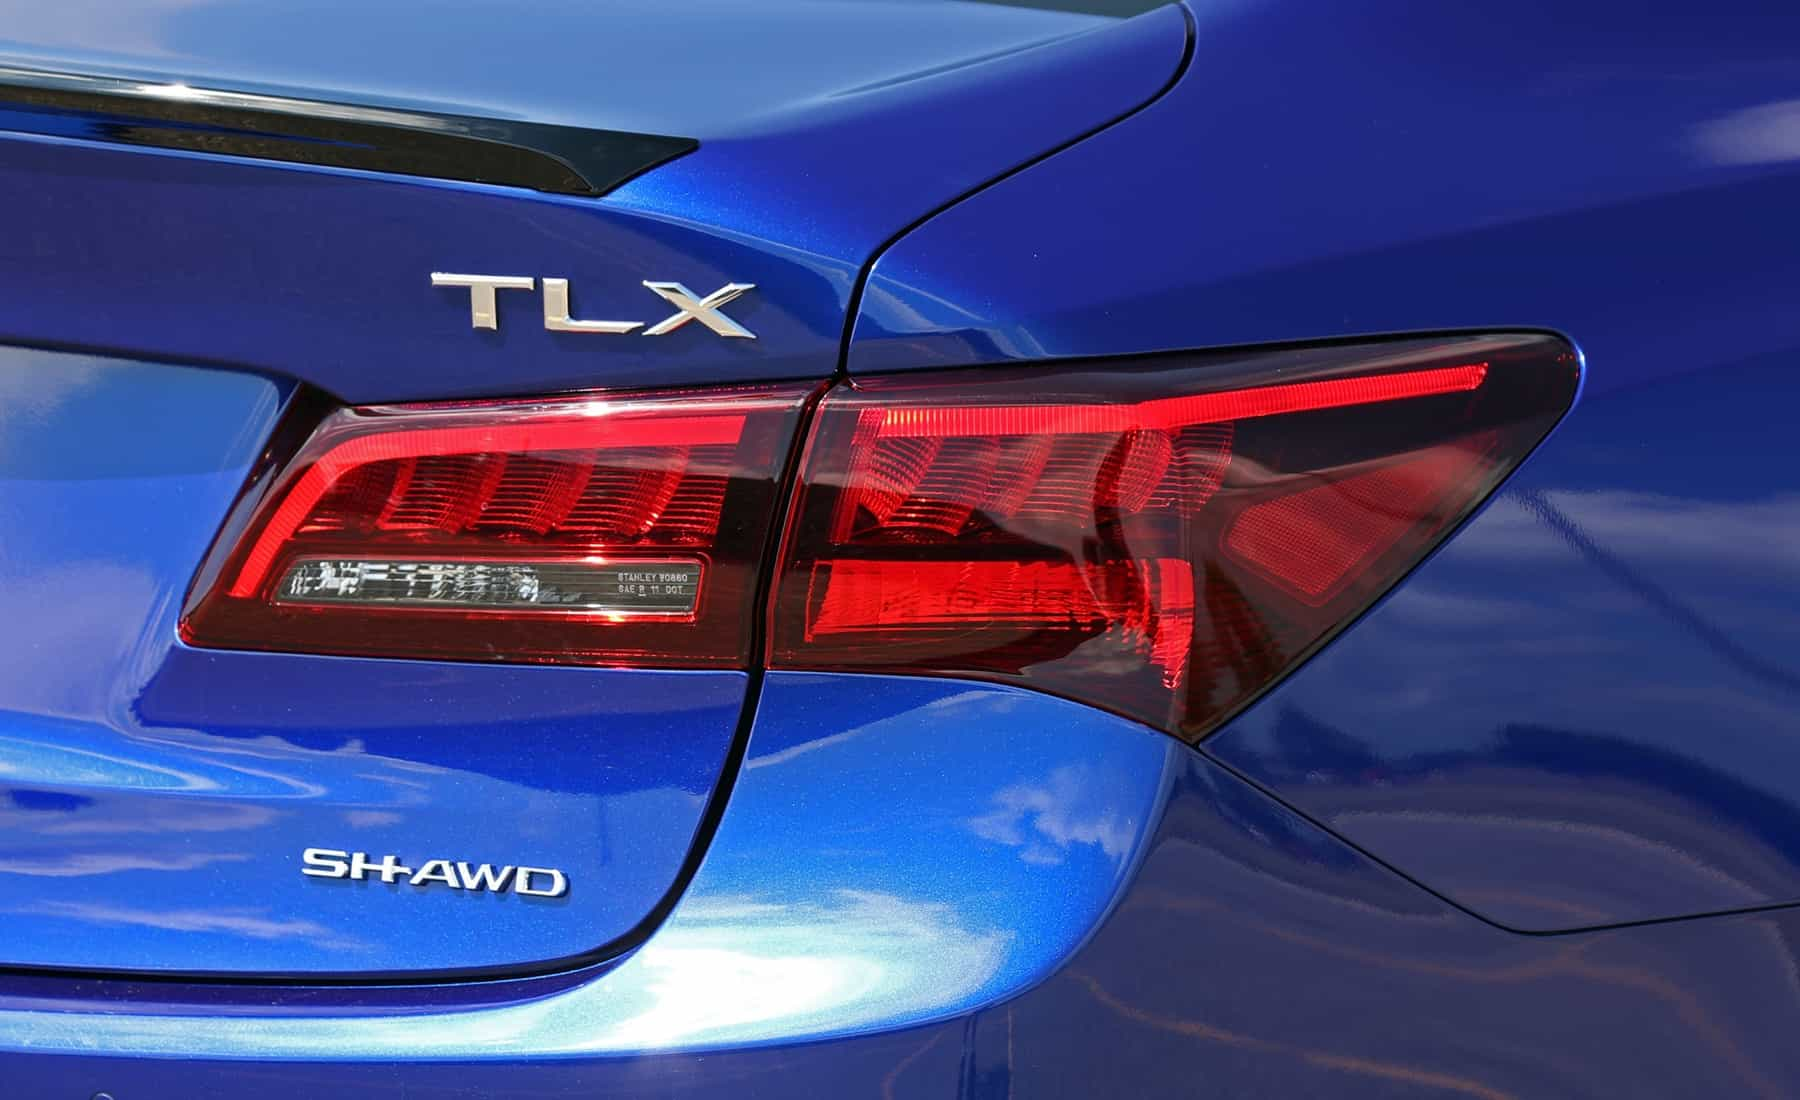 2018 Acura TLX Exterior View Taillight And Emblem (Photo 17 of 46)